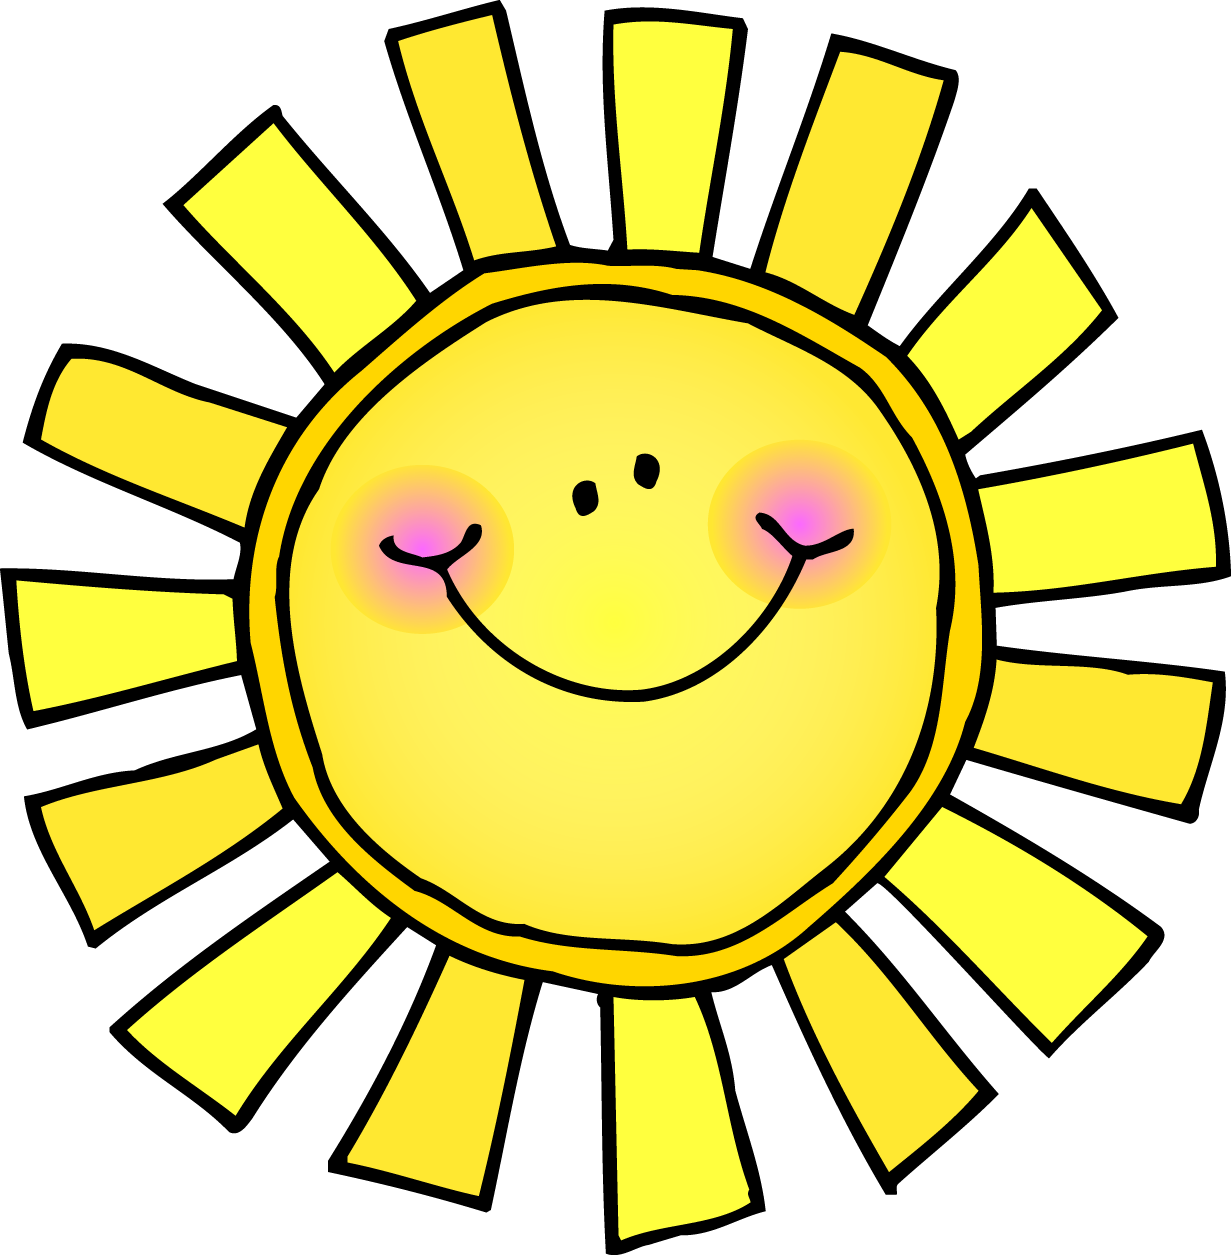 Clipart sun summer, Clipart sun summer Transparent FREE for ...